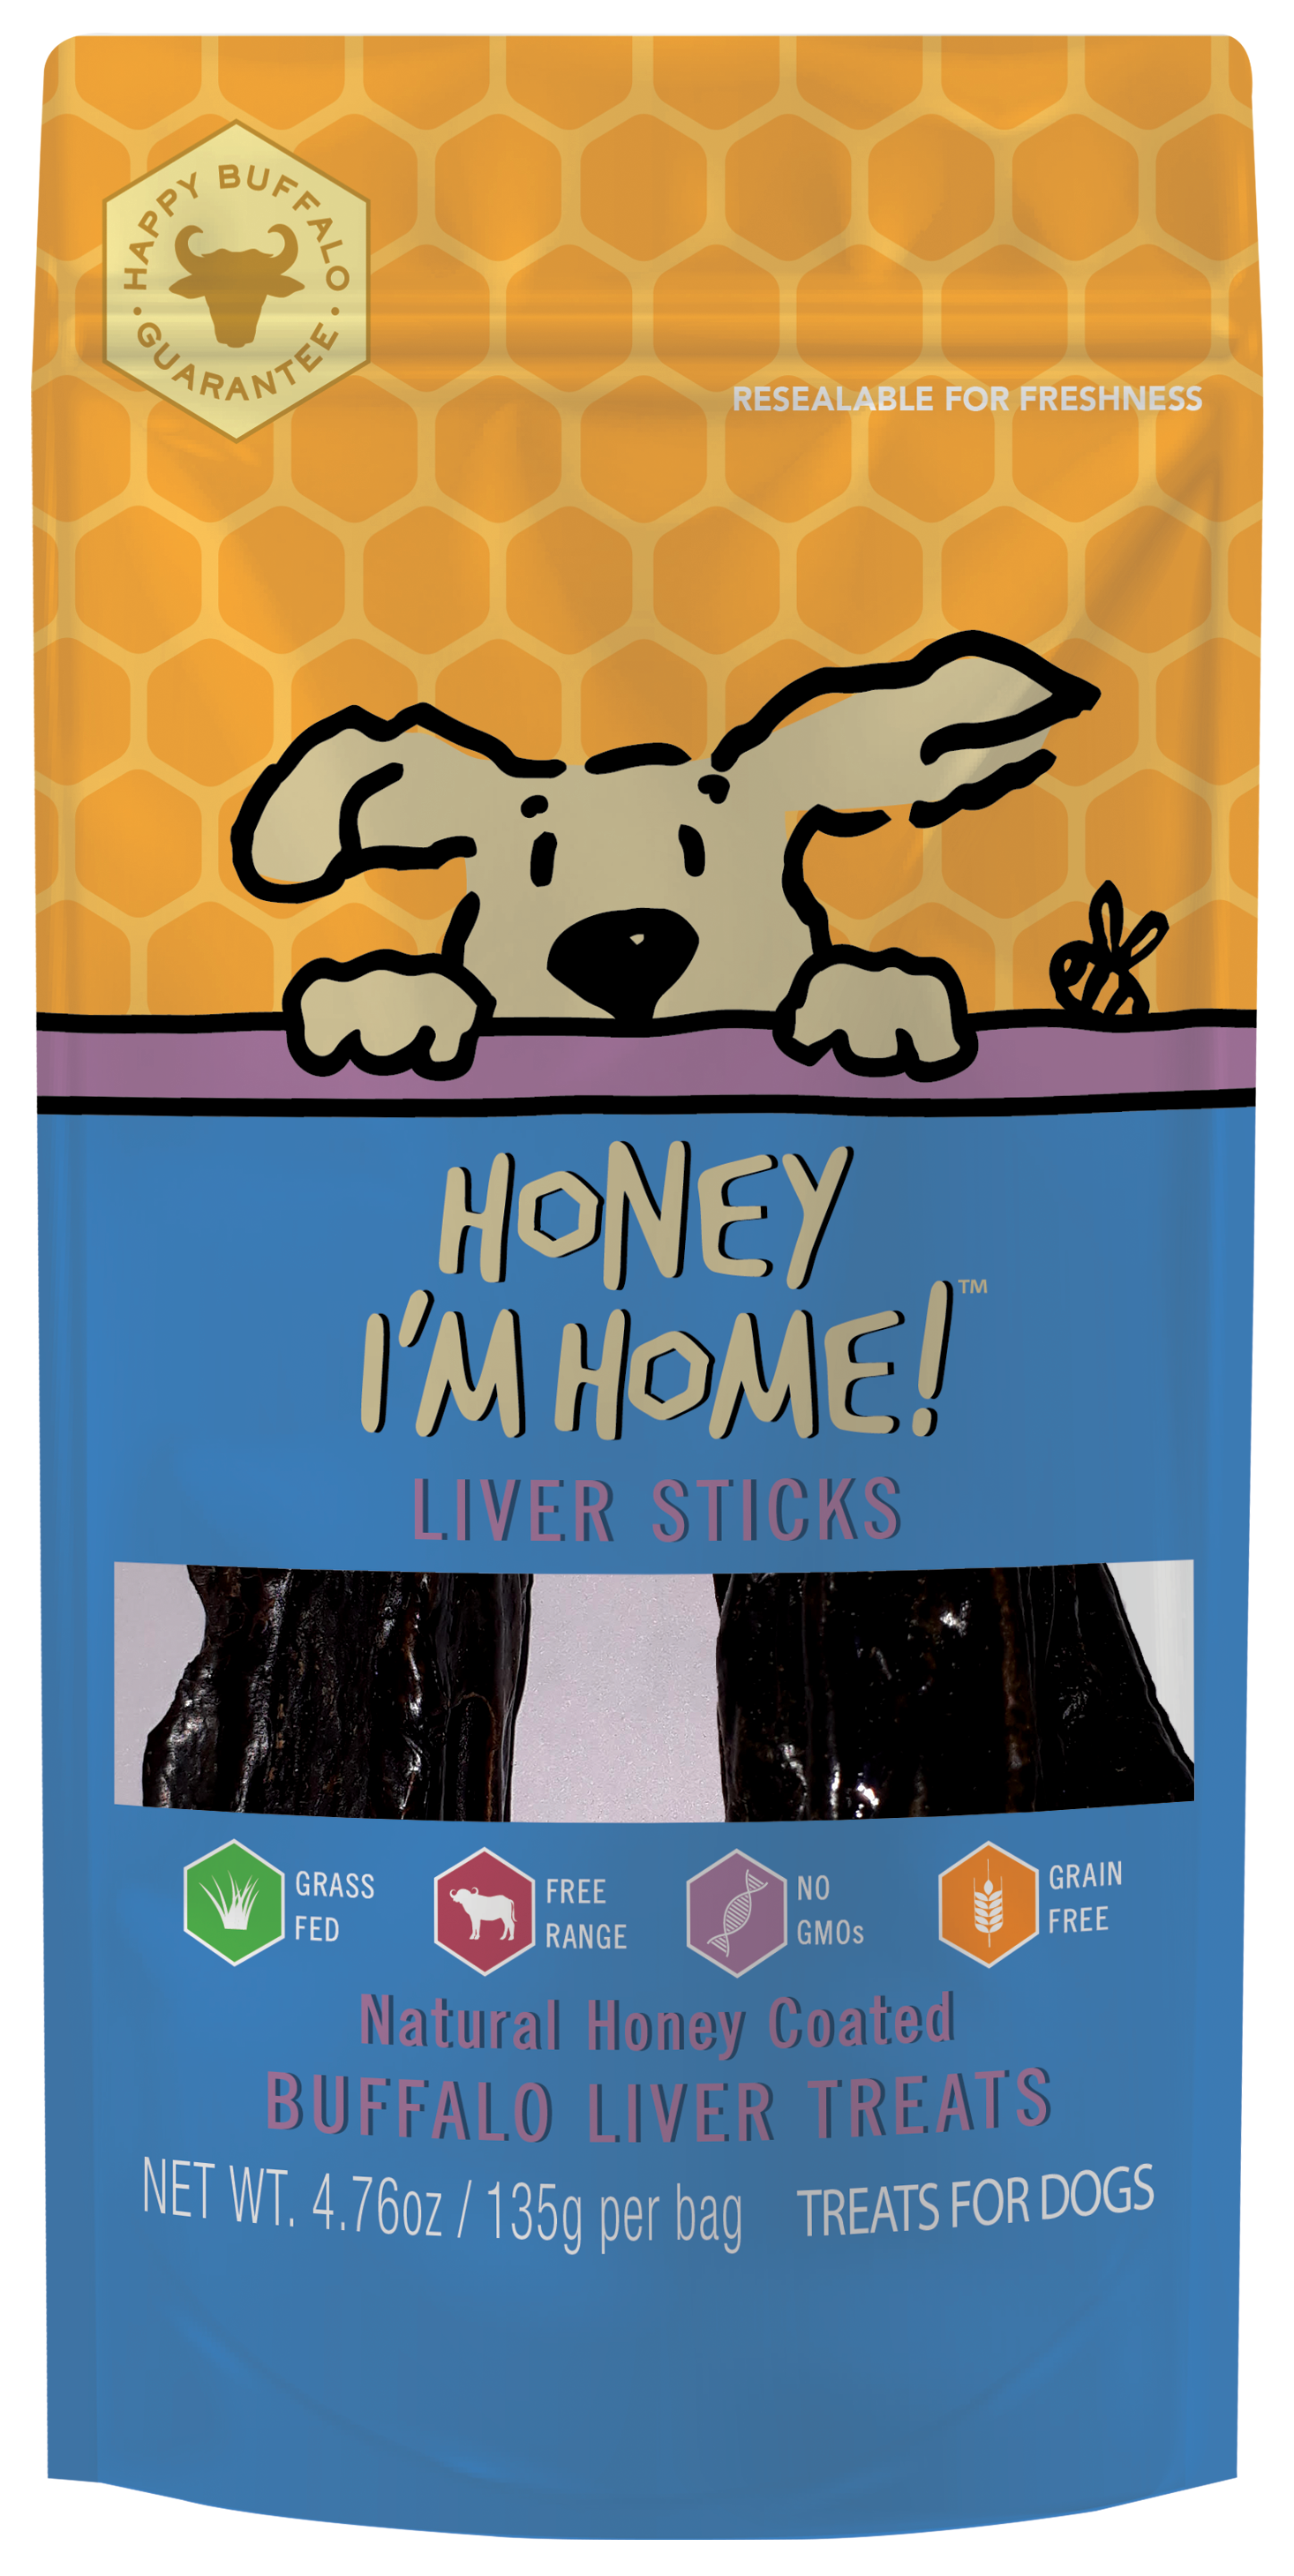 Honey I'm Home Natural Honey Coated Buffalo Liver Sticks Dog Treats